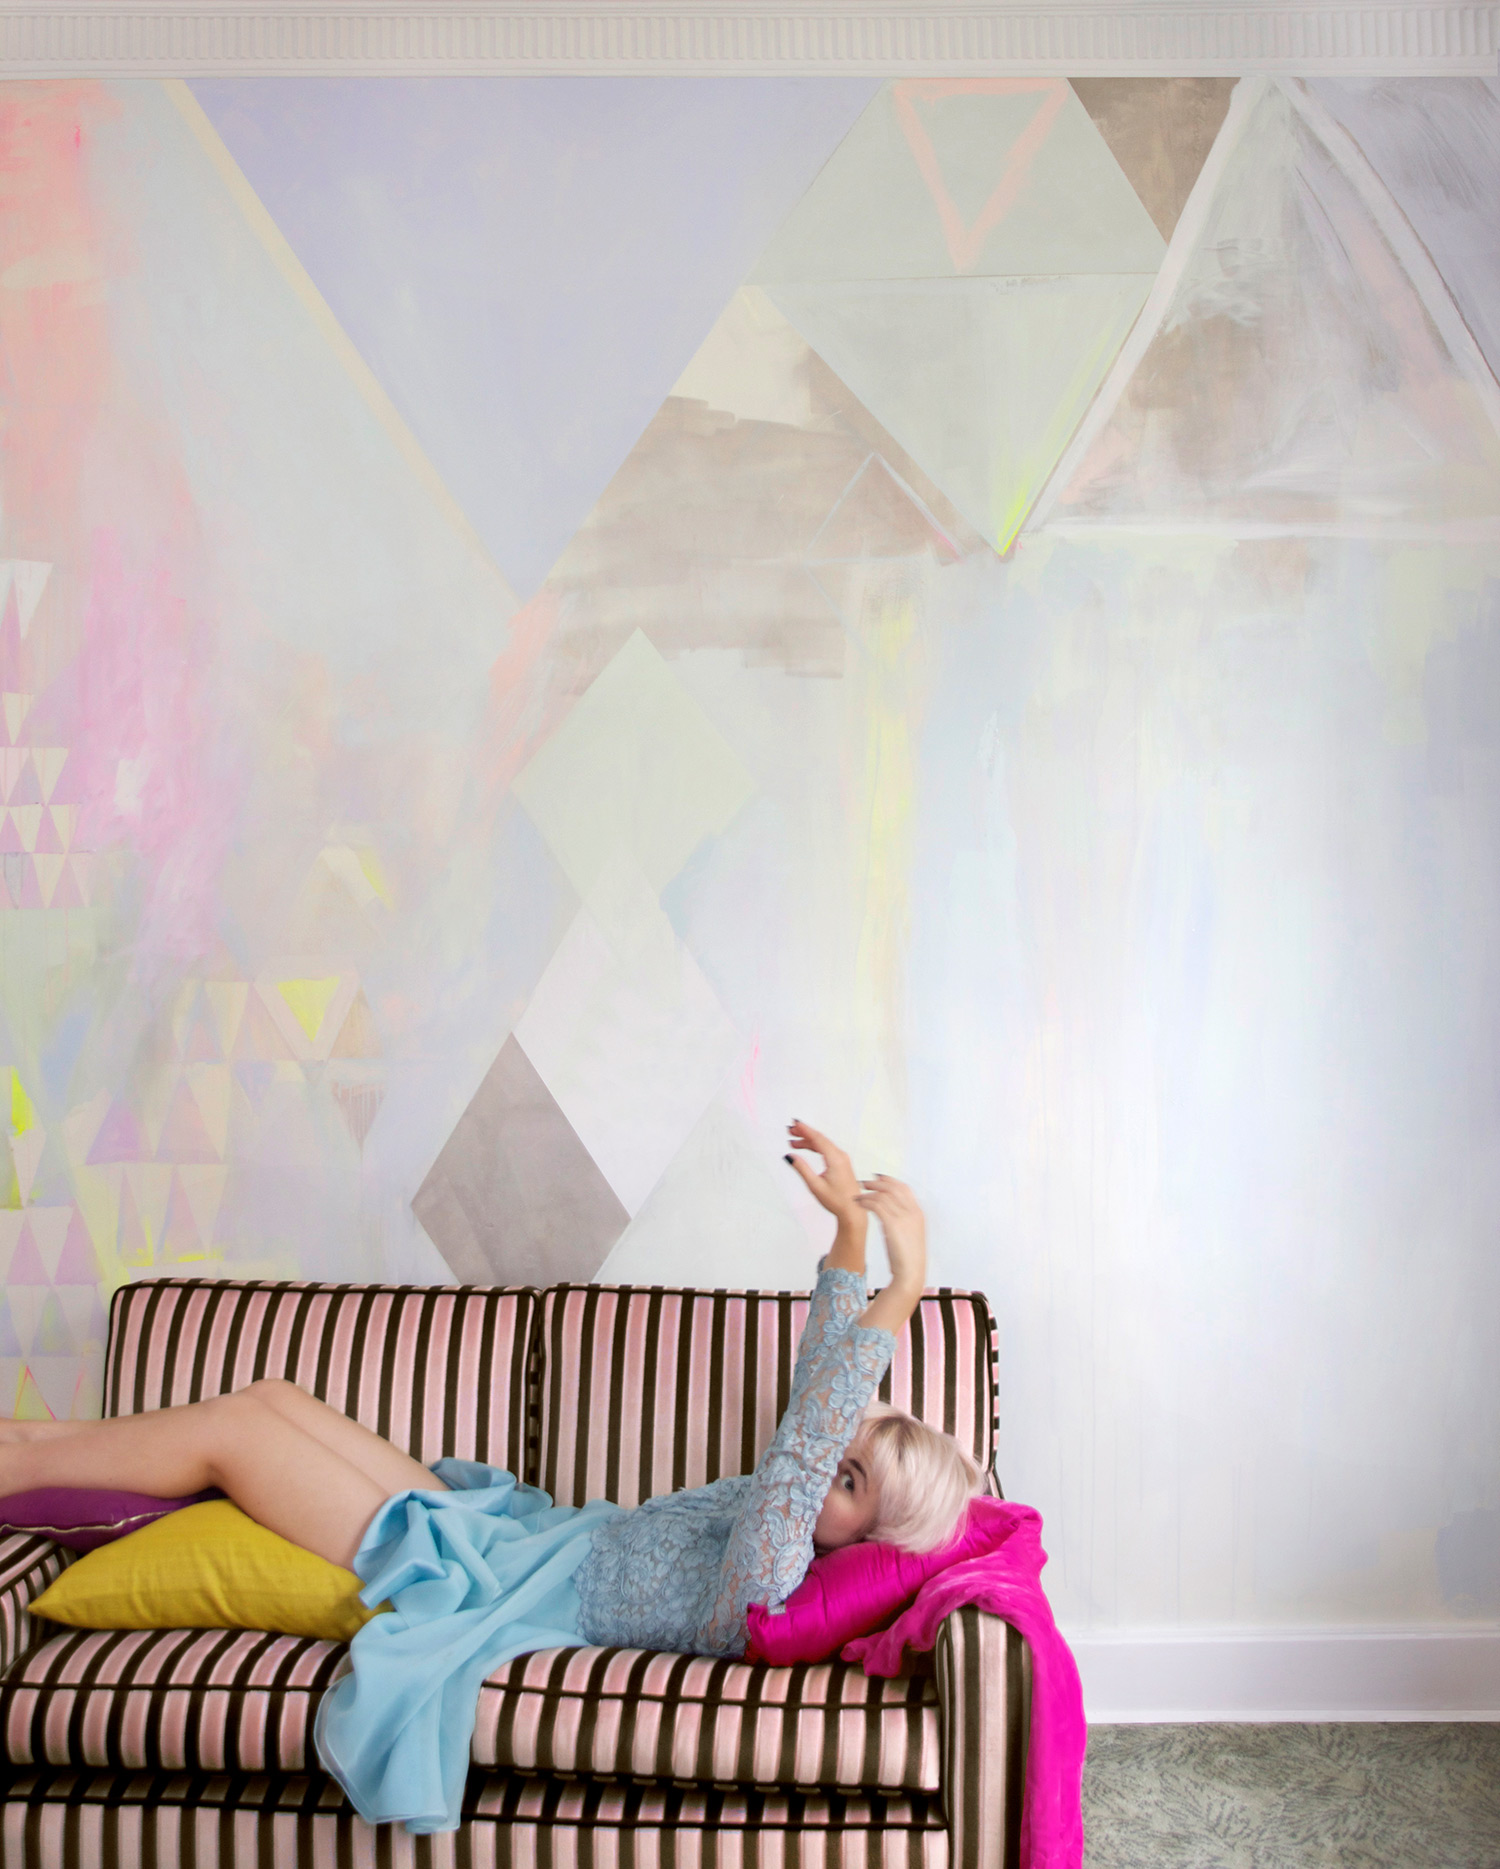 Diamond abstract pastel mural with metallic paint and neon yellow highlights, featuring vintage striped velvet couch with model lounging in pastel blue lace vintage dress and cheekily peering at camera.